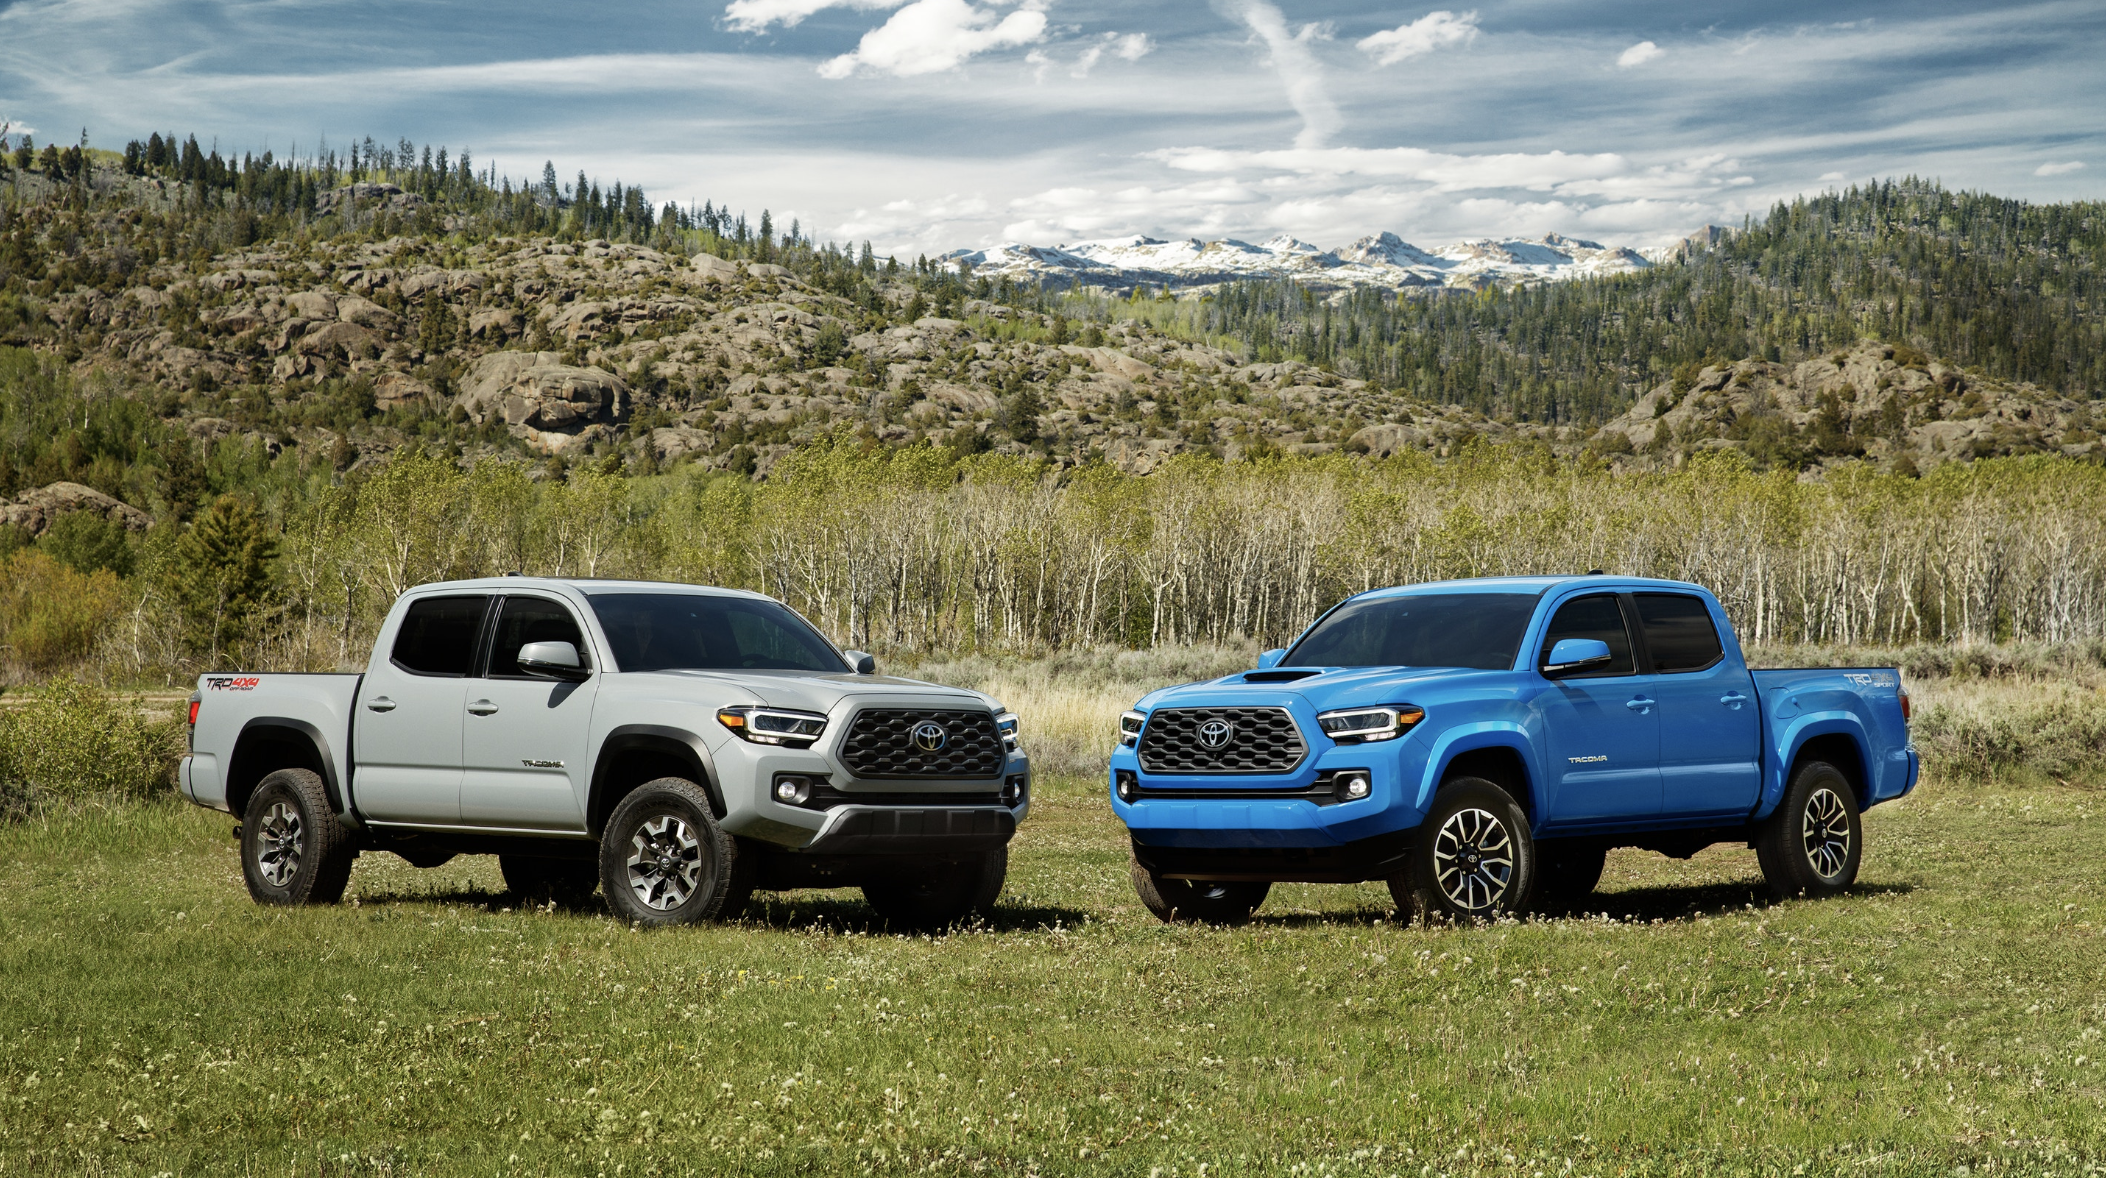 New 2020 Toyota Tacoma 2wd Trd Off Road Double Cab 5 Bed V6 At In 2020 Toyota Tacoma 2017 Toyota Tacoma Toyota Tacoma Trd